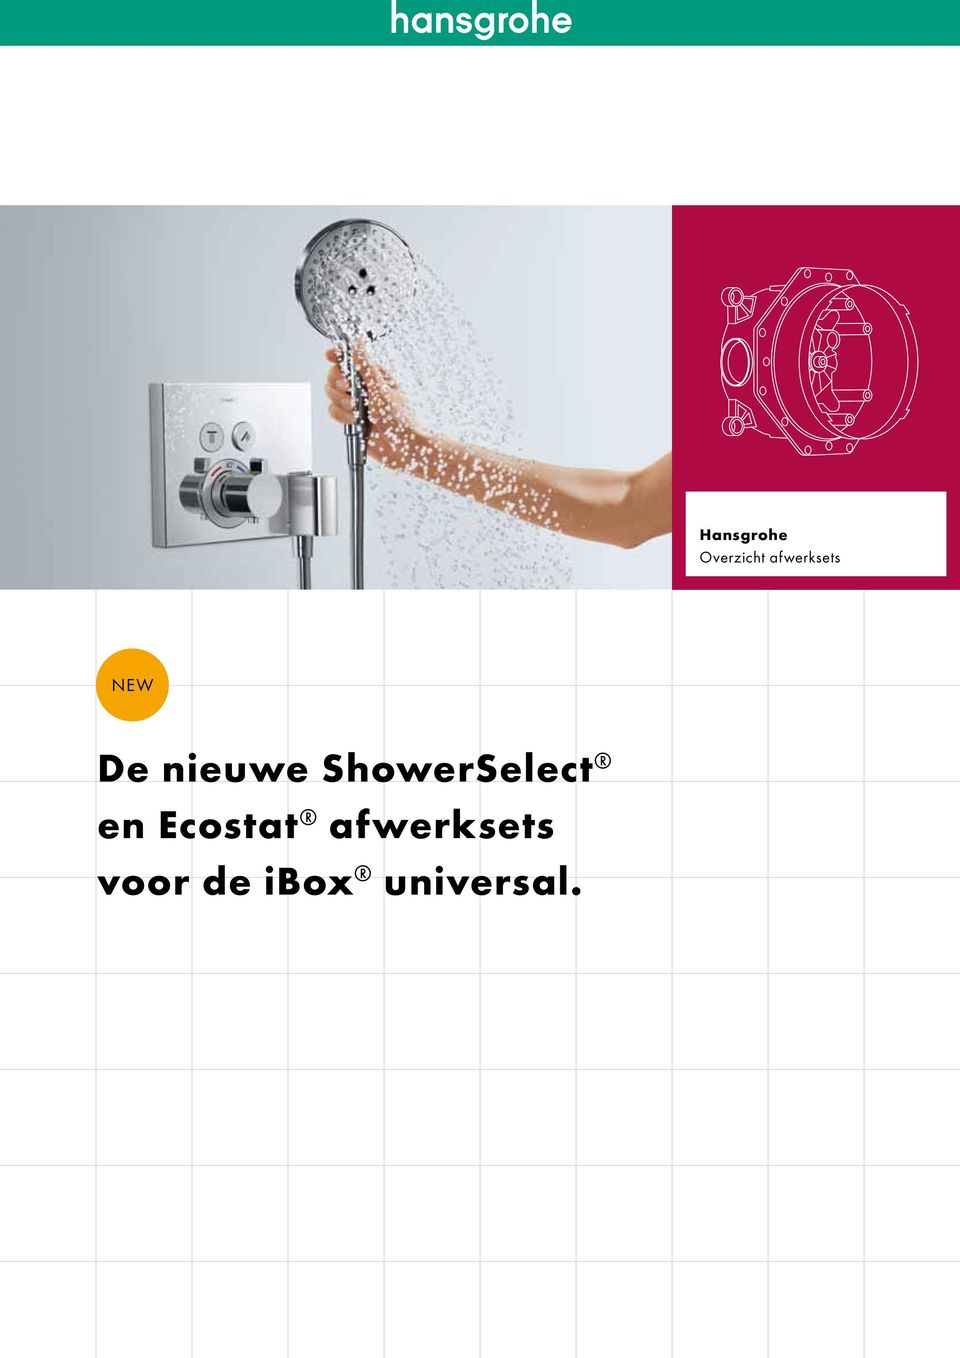 hansgrohe overzicht afwerksets new de nieuwe showerselect en ecostat afwerksets voor de ibox. Black Bedroom Furniture Sets. Home Design Ideas